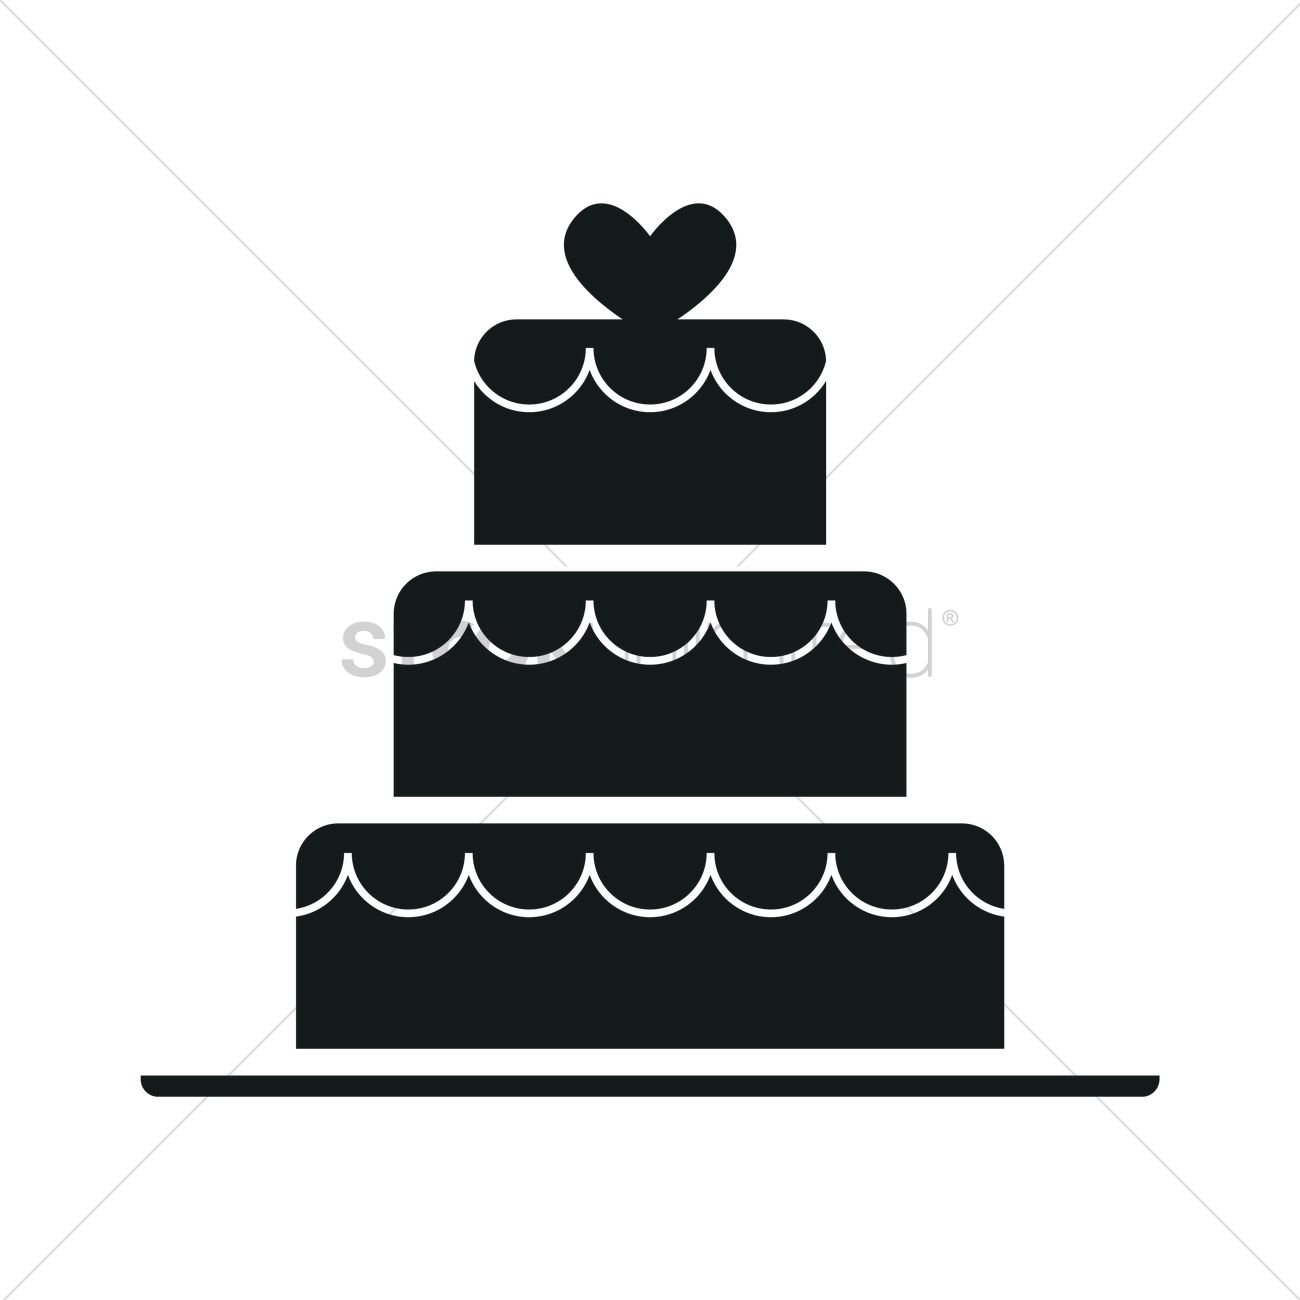 Cake Tier Stand Silhouette Black And White